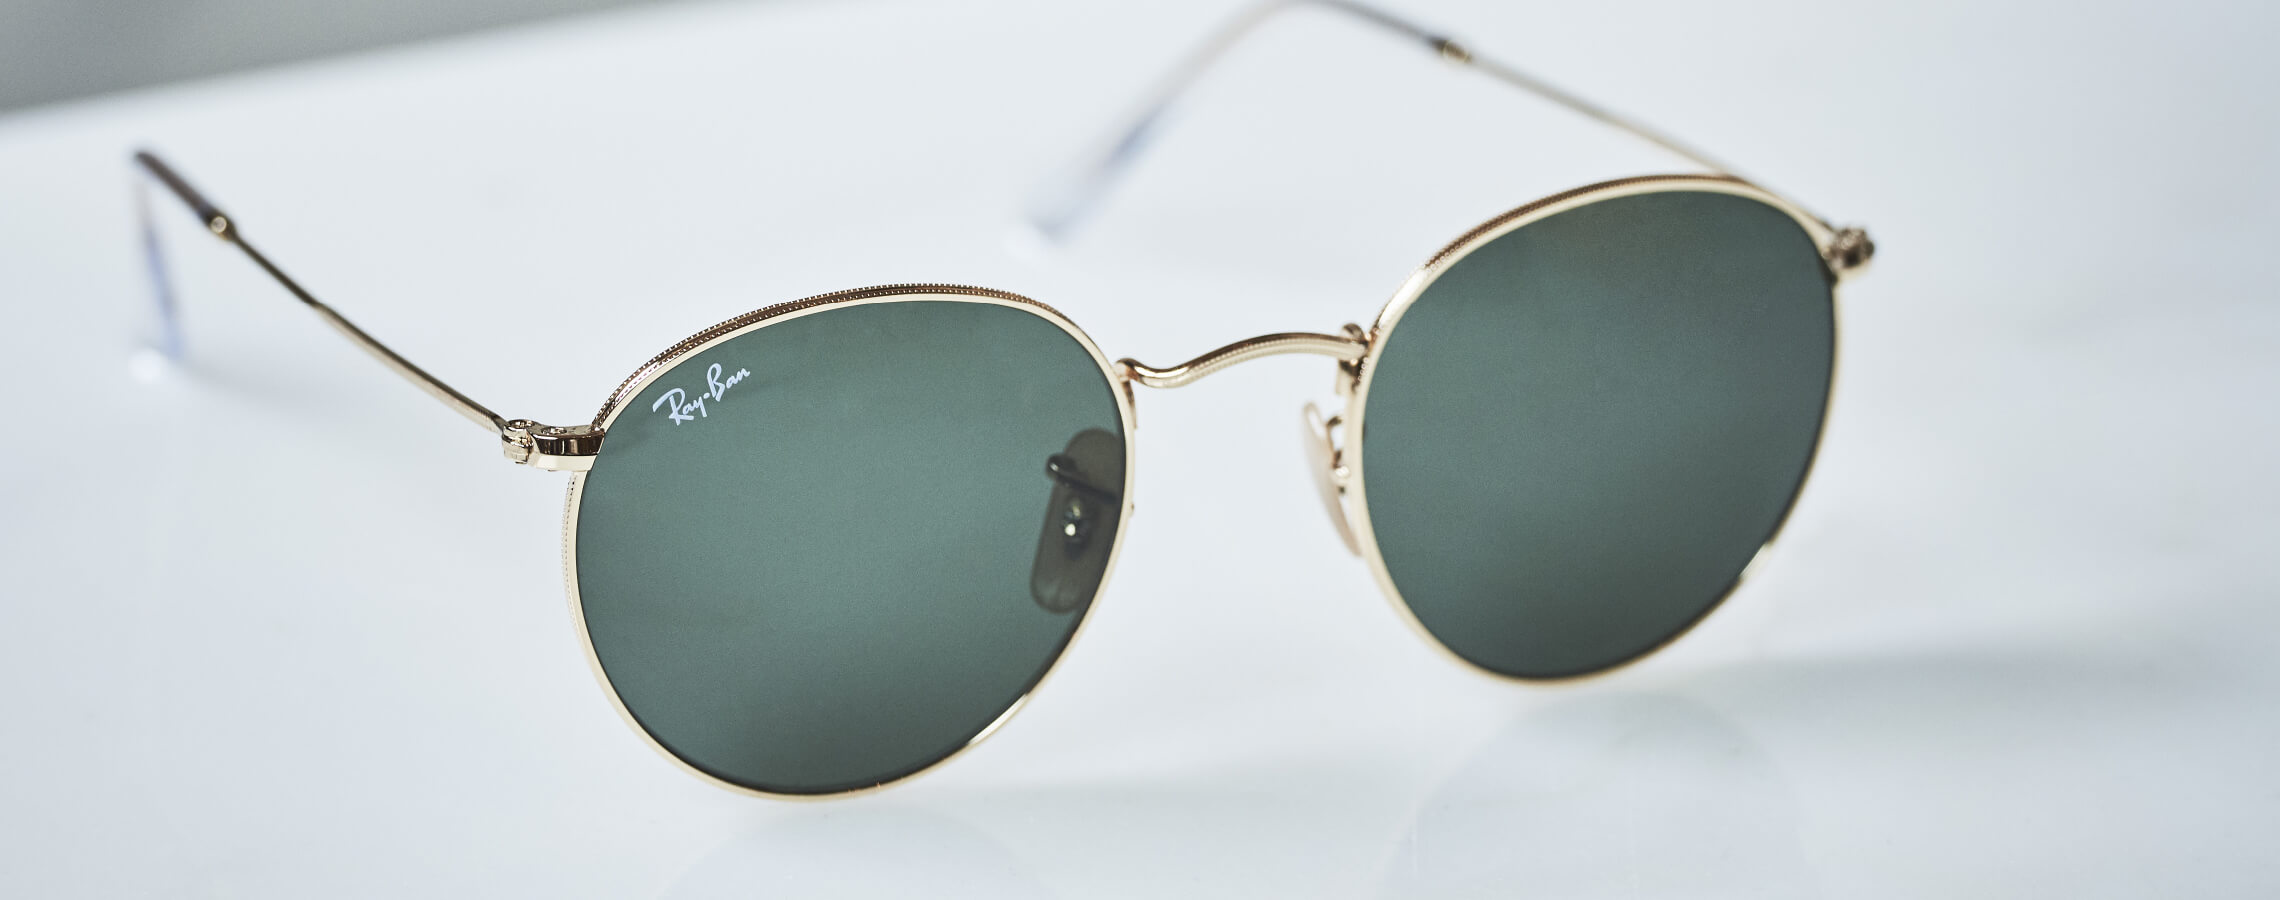 23635a35d12d As well as protecting your eyes from the sun s harmful rays